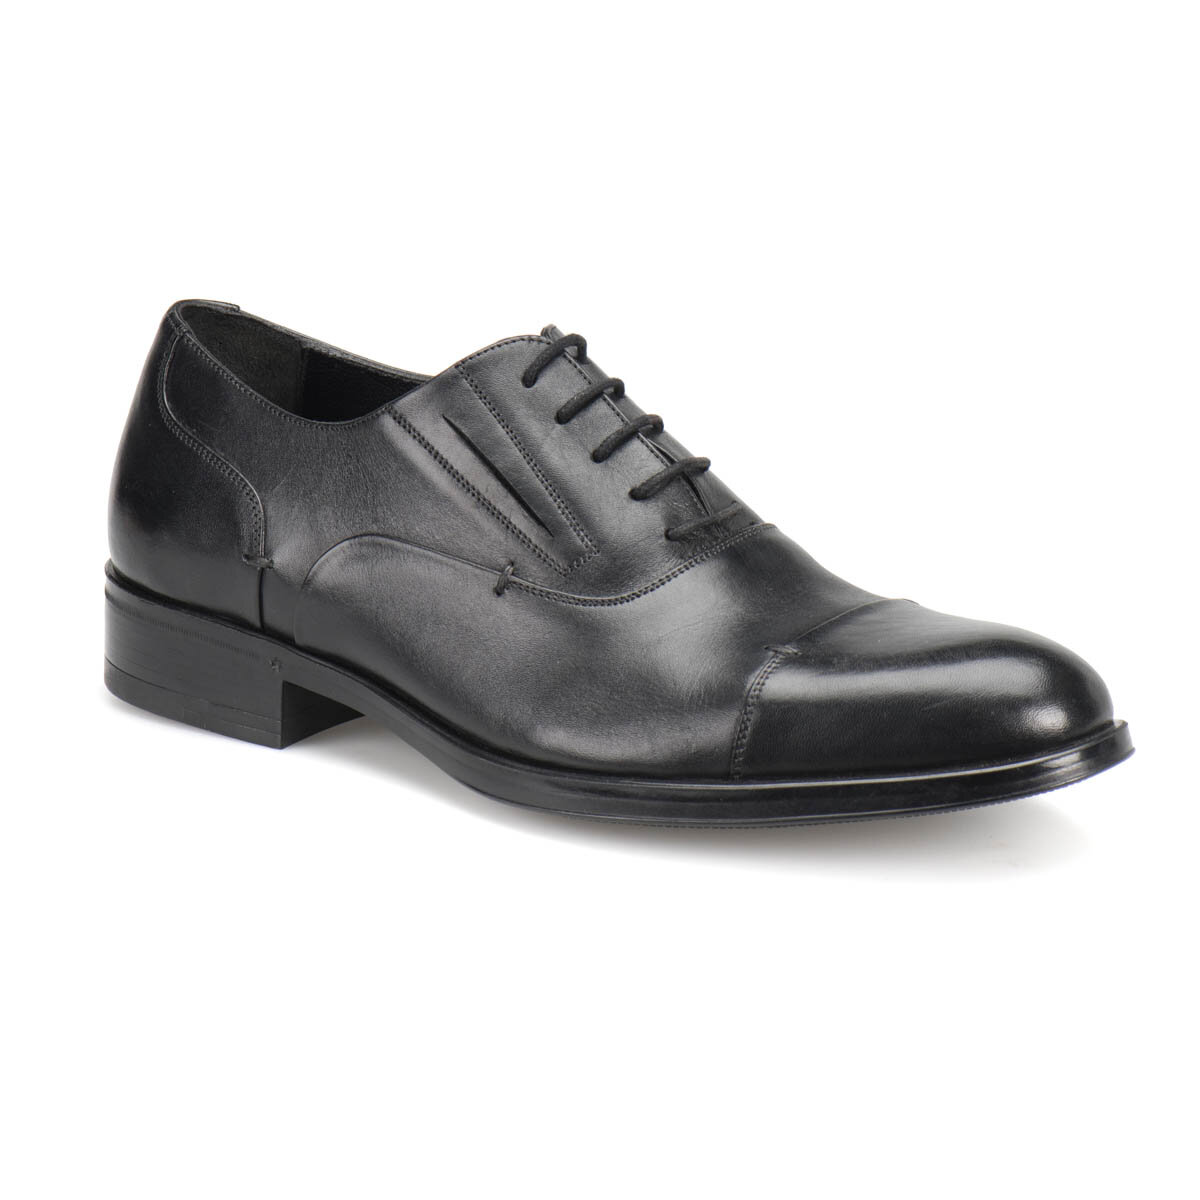 FLO 1938 Black Men 'S Classic Shoes Garamond